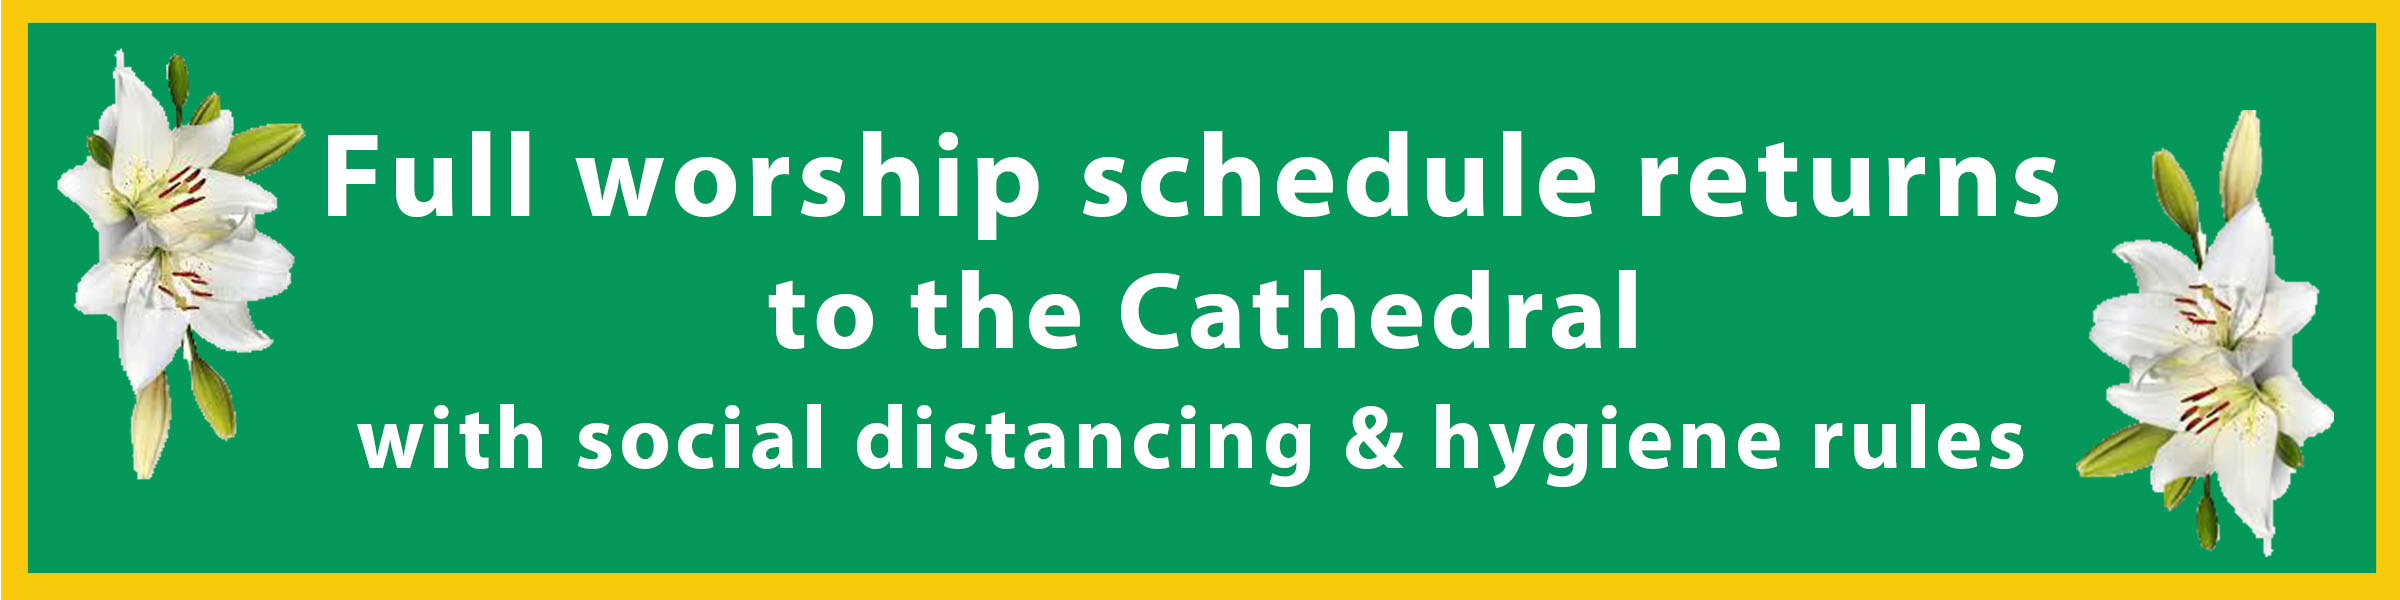 Graphic: Cathedral worship will resume May 31.